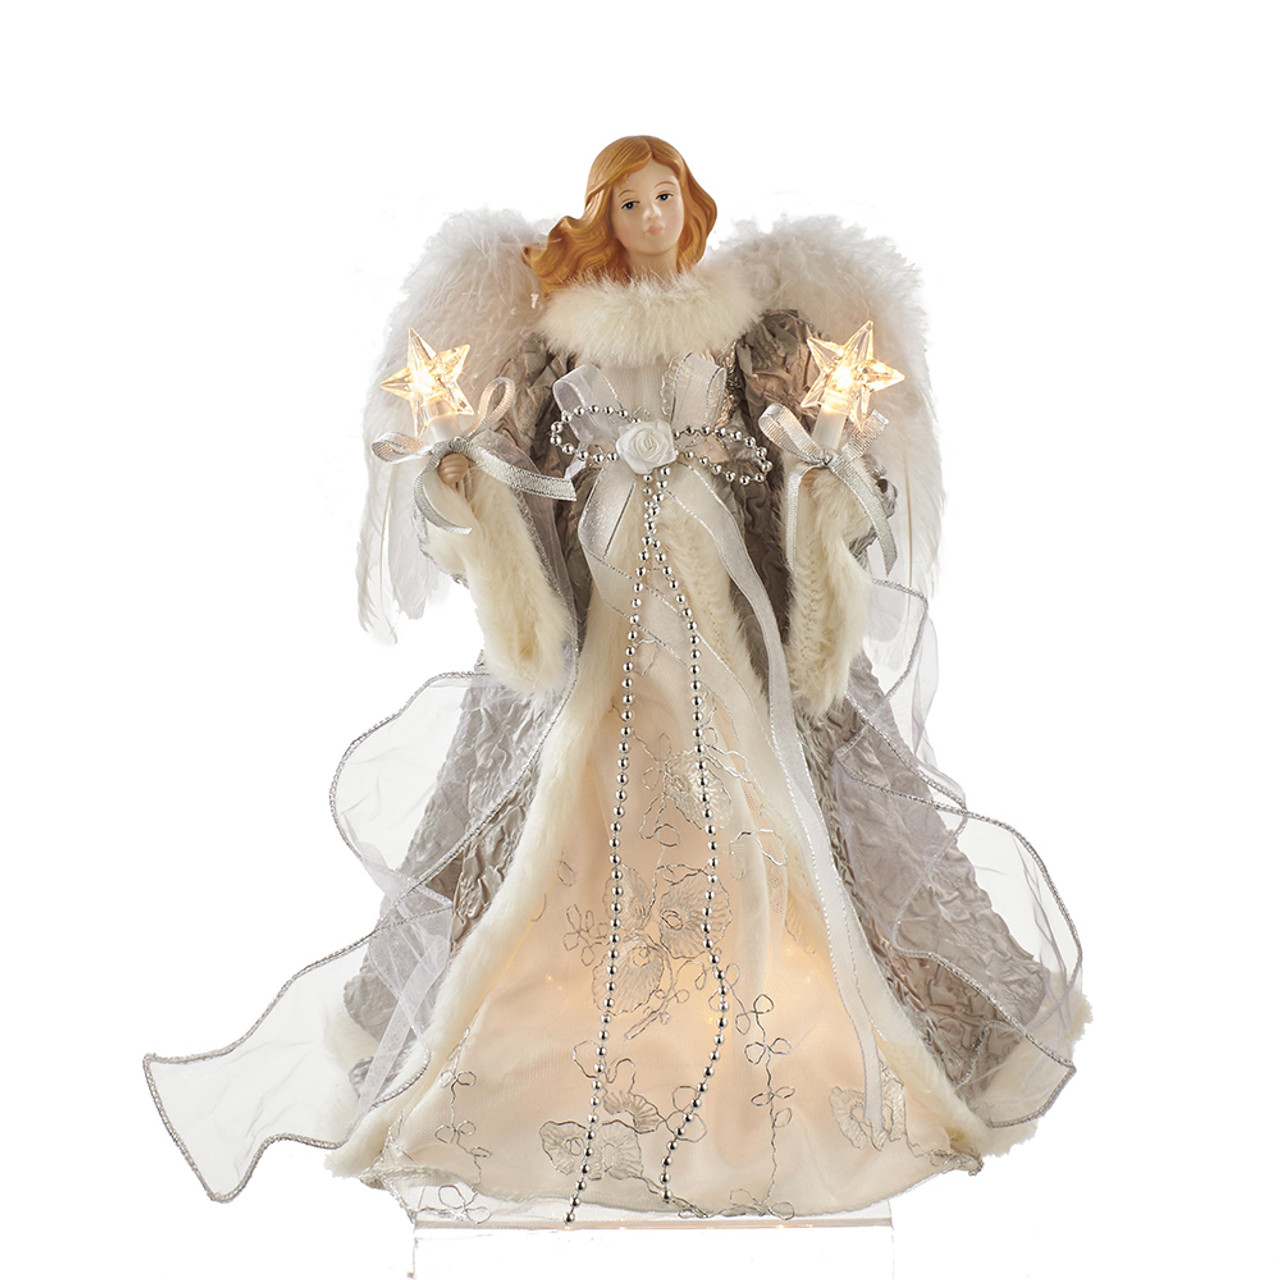 Angel Christmas Tree Topper.14 Lighted Silver And Gray Angel Christmas Tree Topper Ul2223